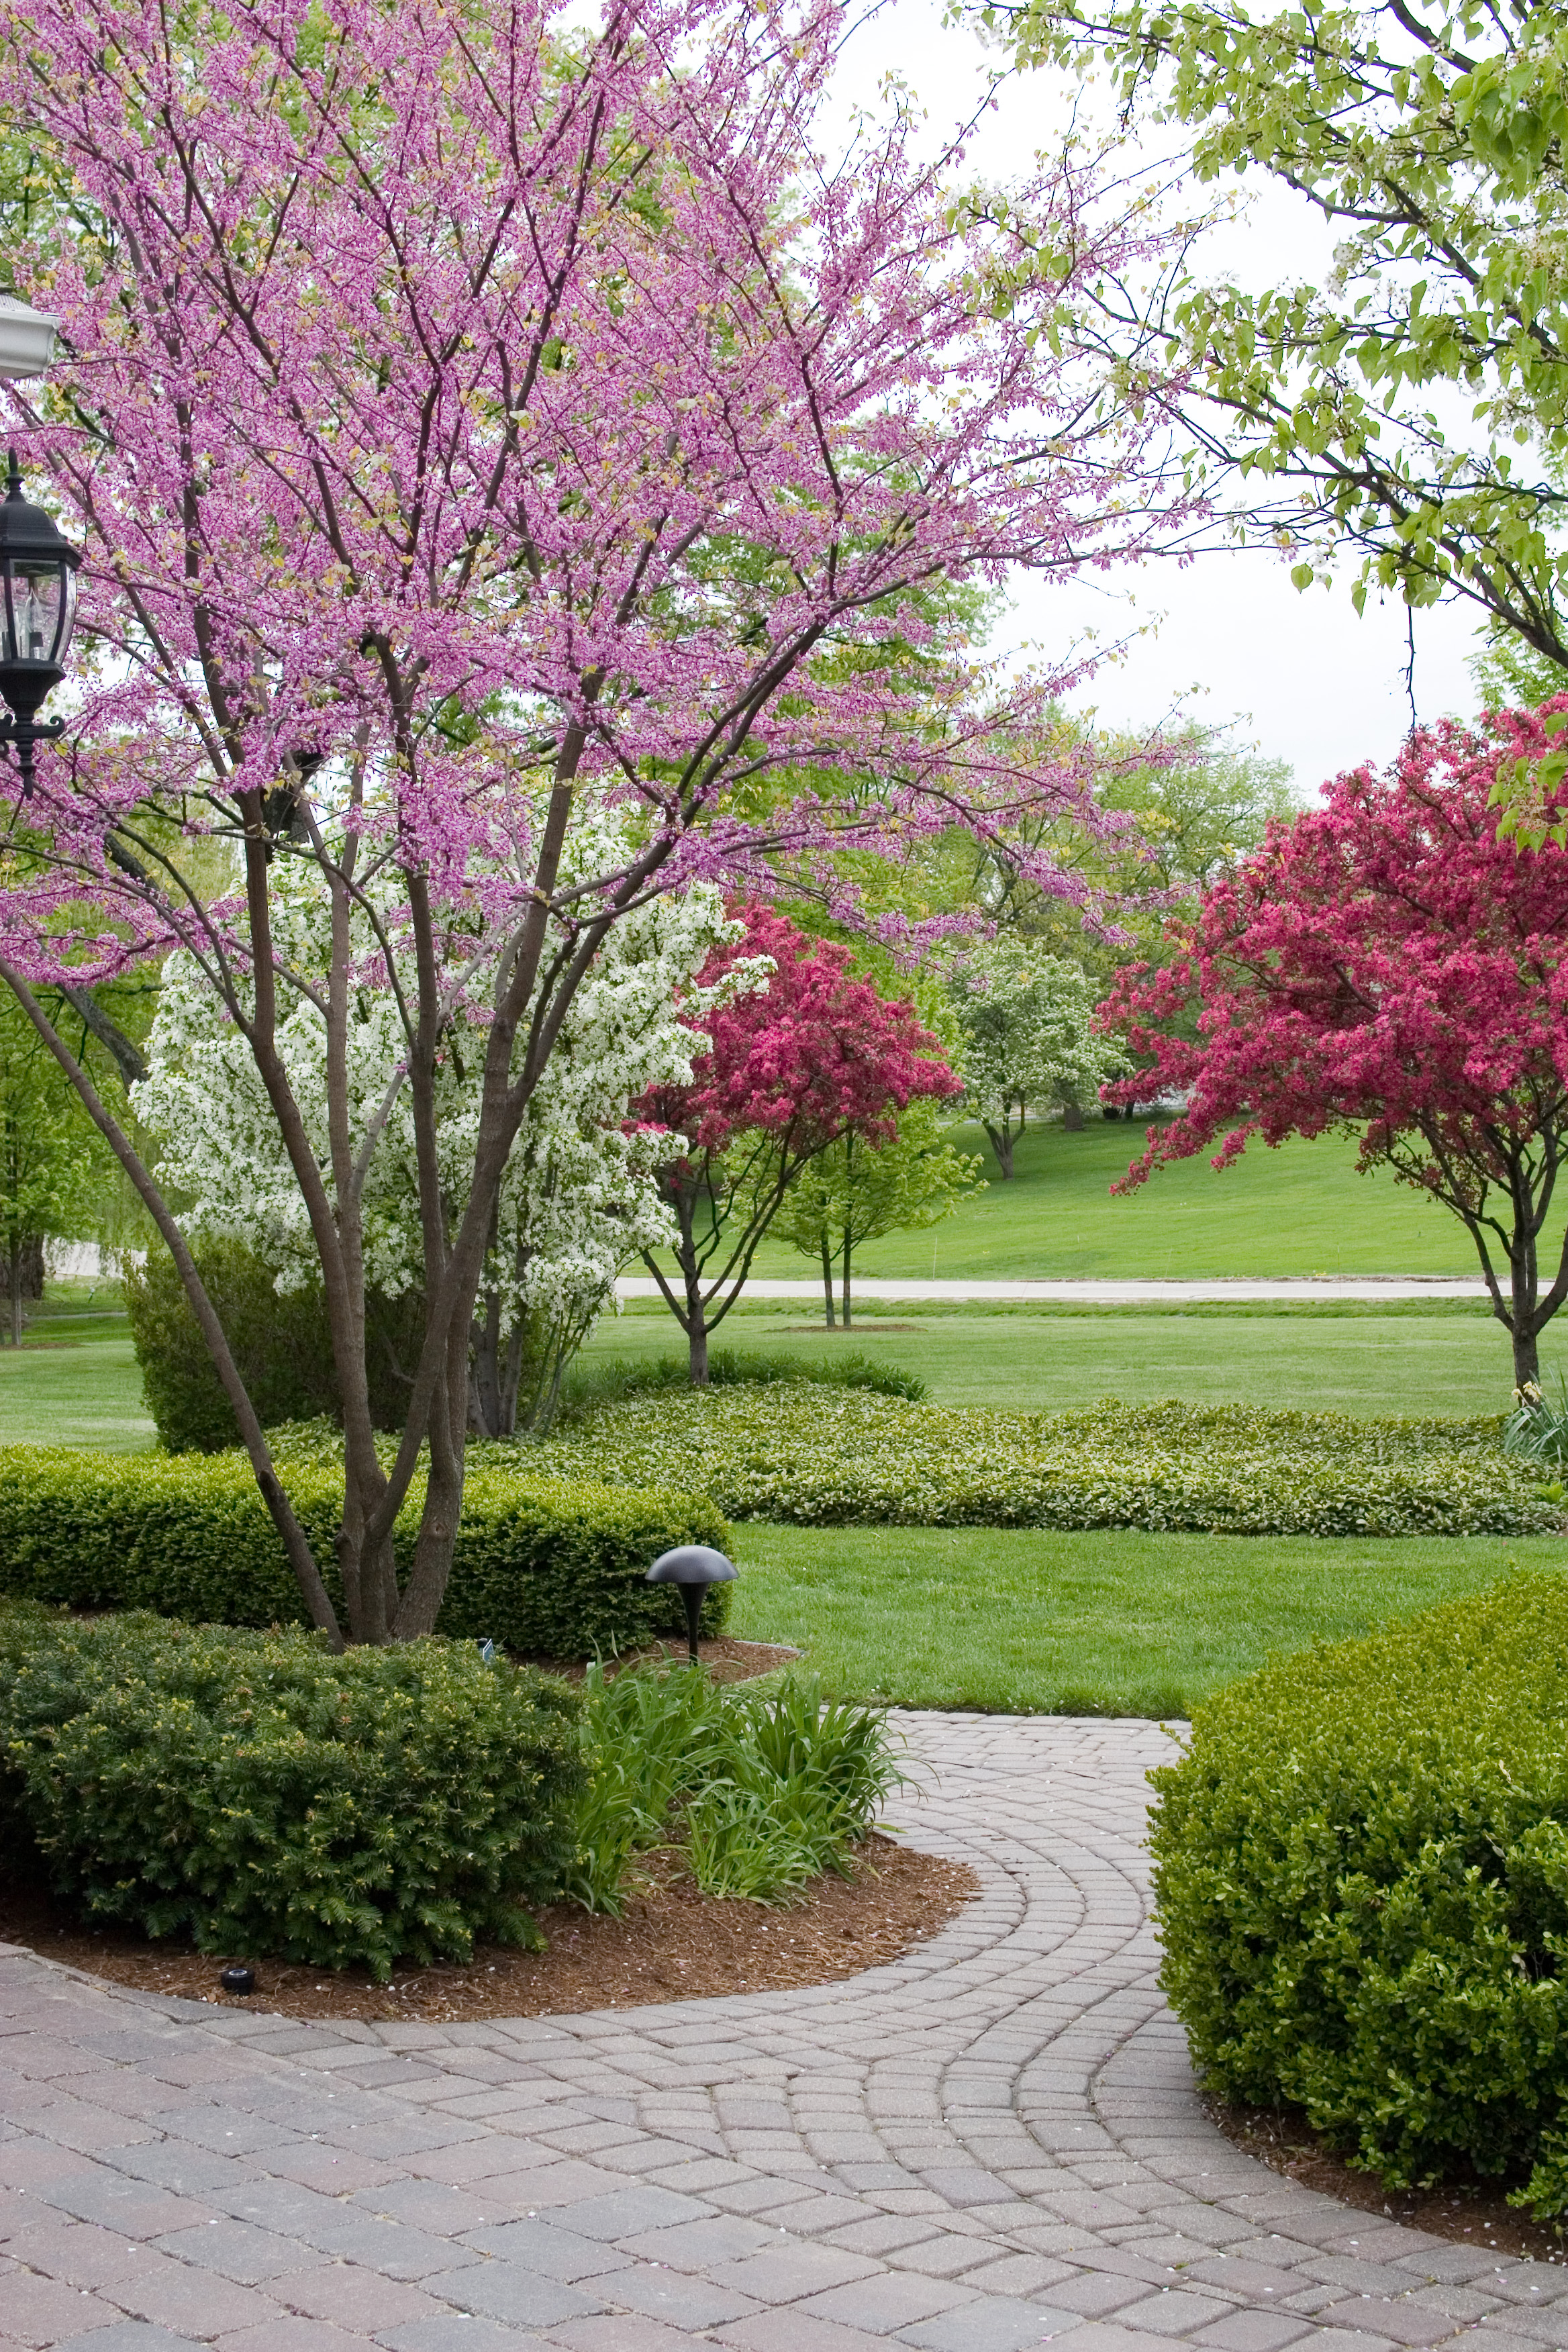 Very Small Flowering Trees For Landscaping Pictures To Pin: small flowering trees